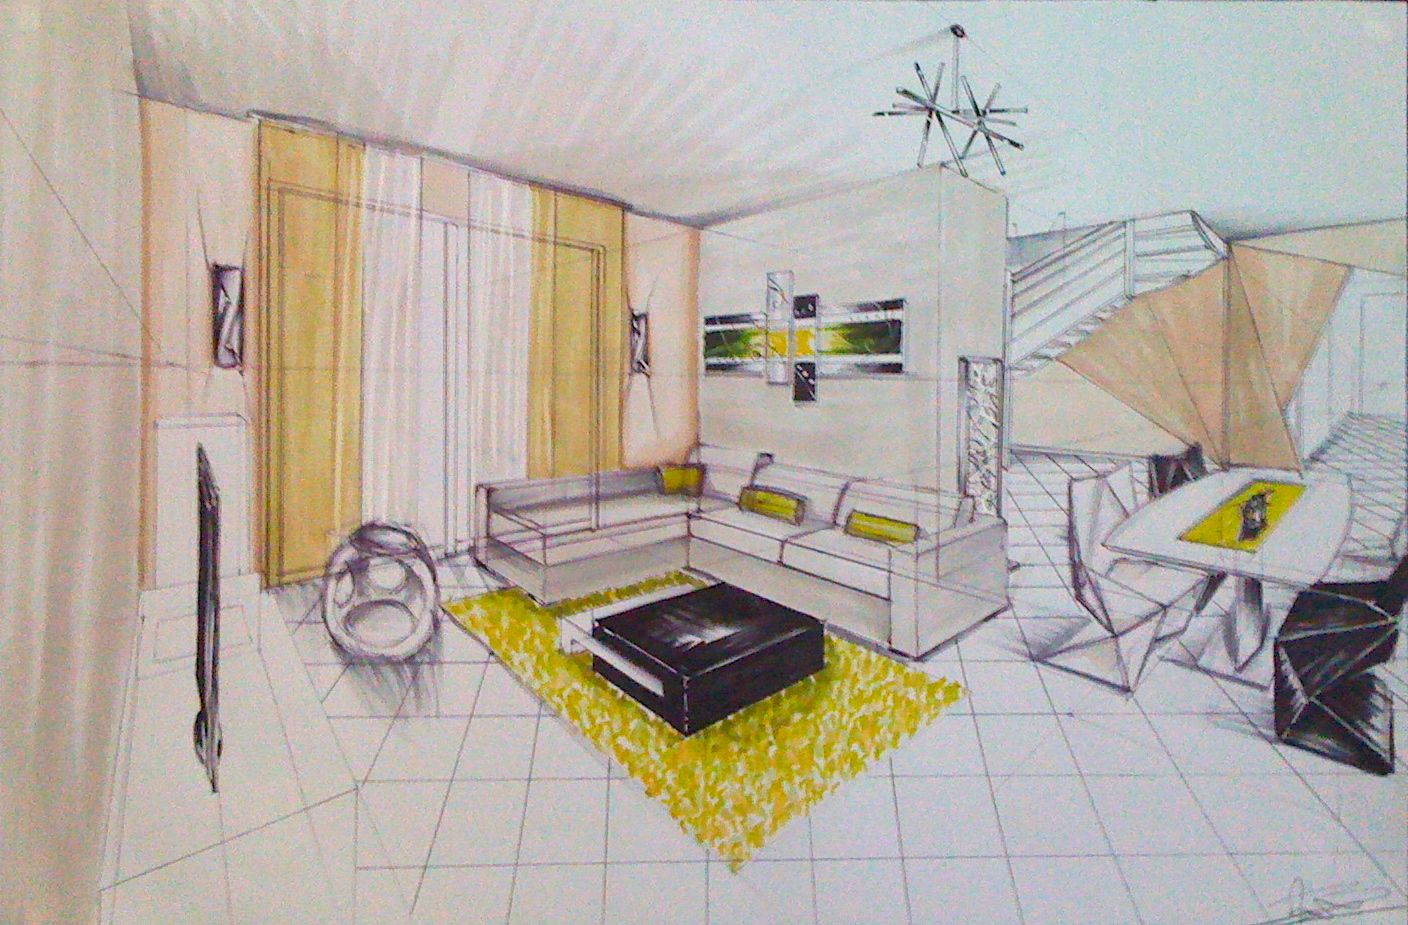 dessiner l interieur d une maison en perspective ventana. Black Bedroom Furniture Sets. Home Design Ideas